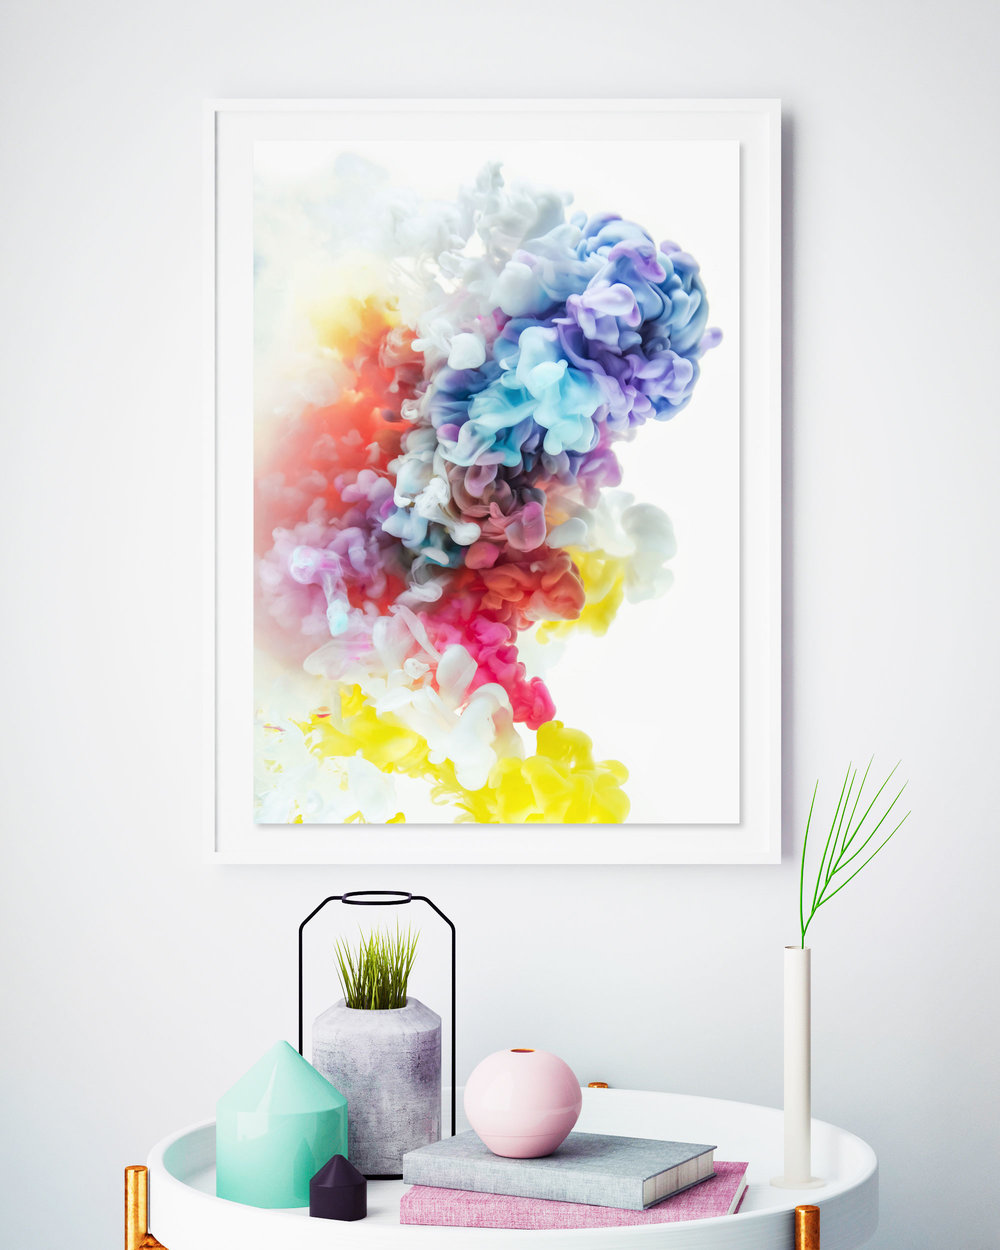 Cloud 9 by Jessica Kenyon in styled interior